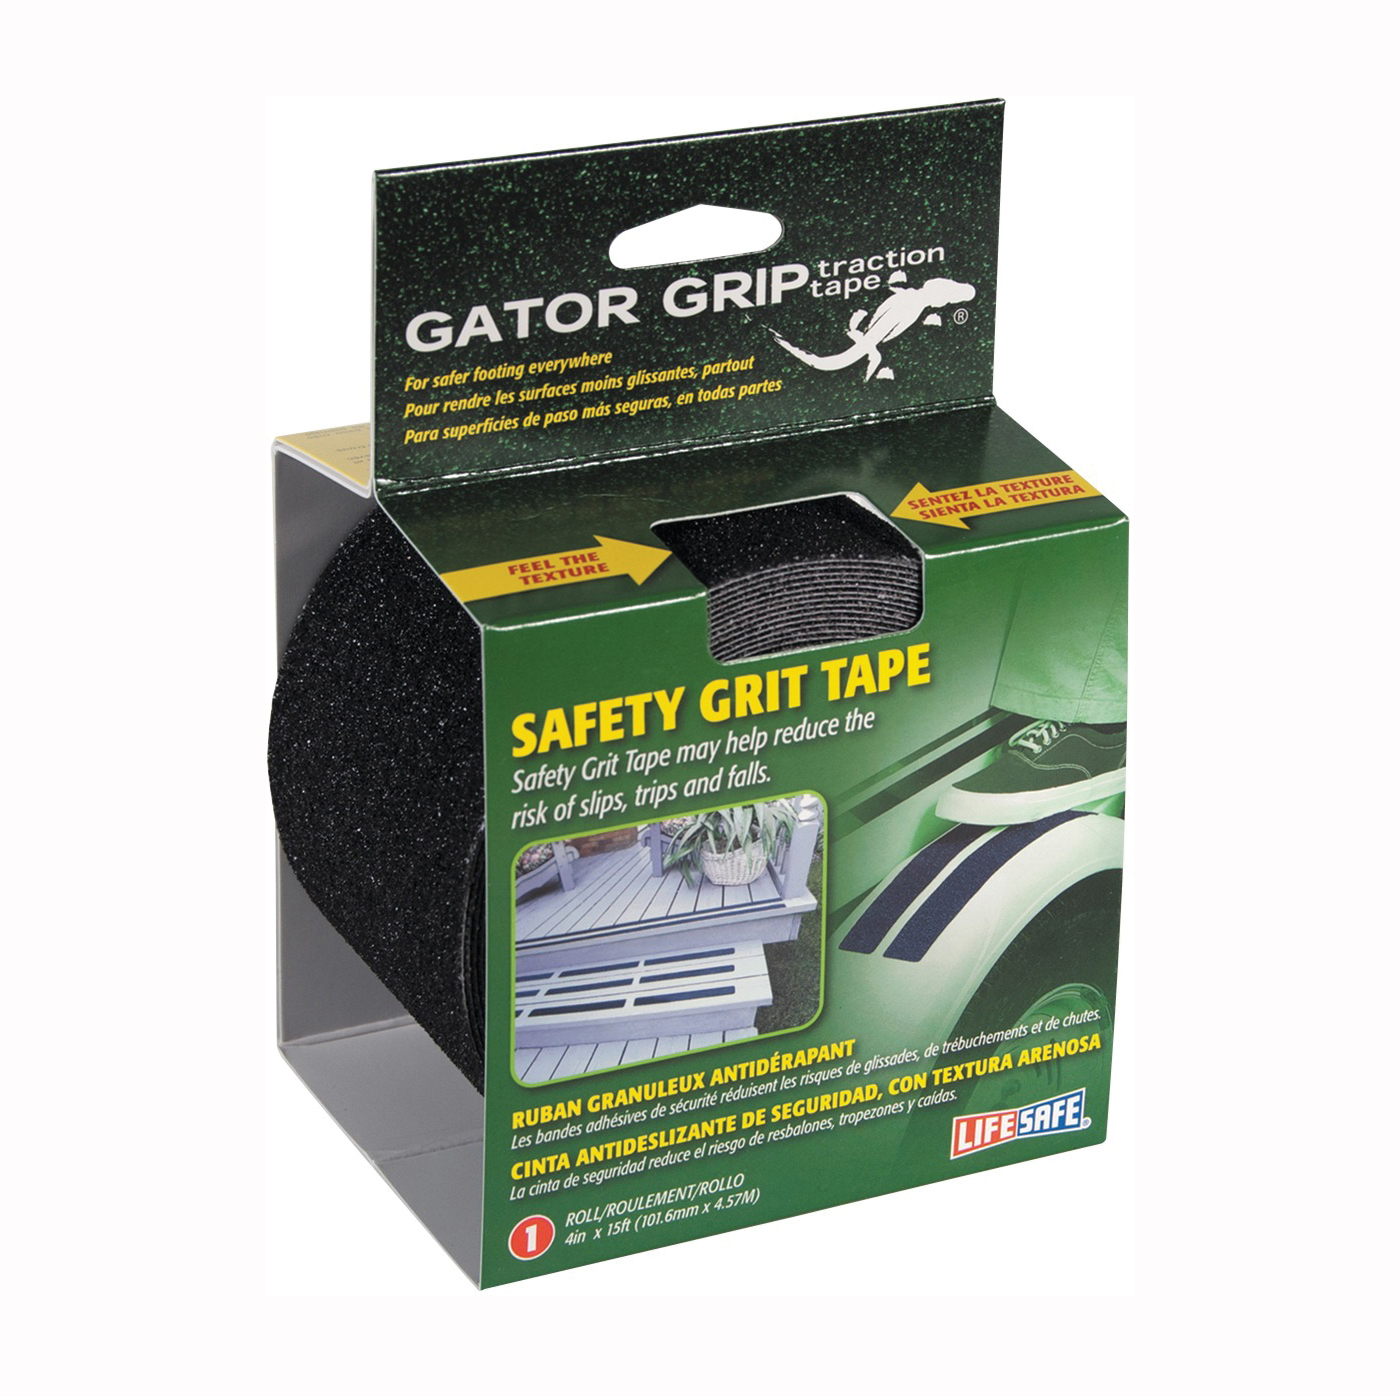 Picture of INCOM Gator Grip RE3952 Safety Grit Tape, 15 ft L, 4 in W, PVC Backing, Black